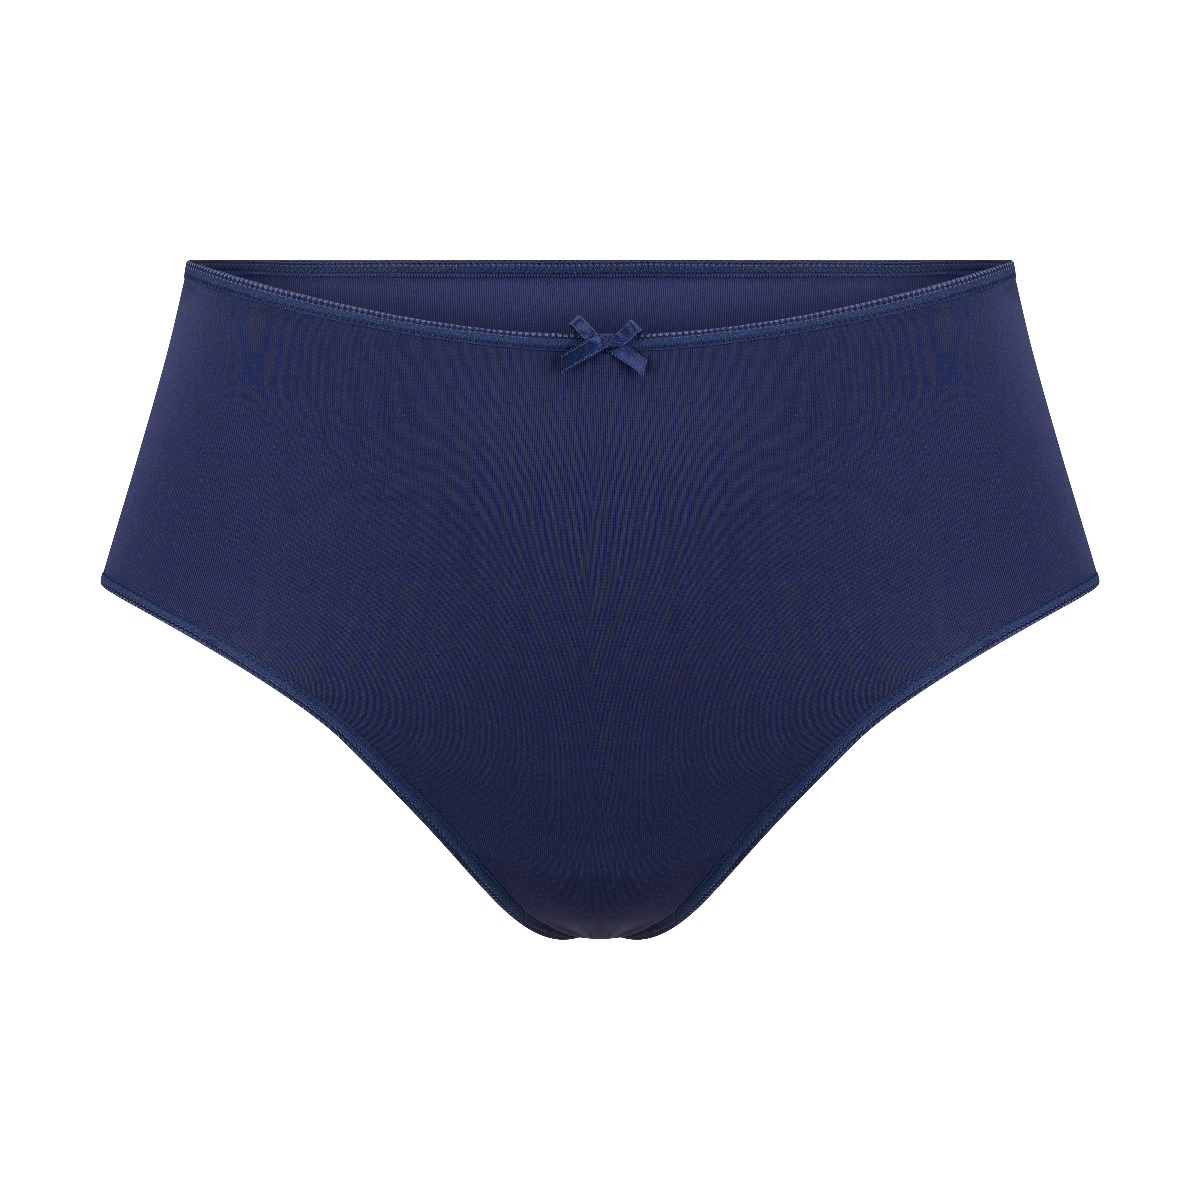 RJ Pure Color Dames String Extra Hoog Donkerblauw XL